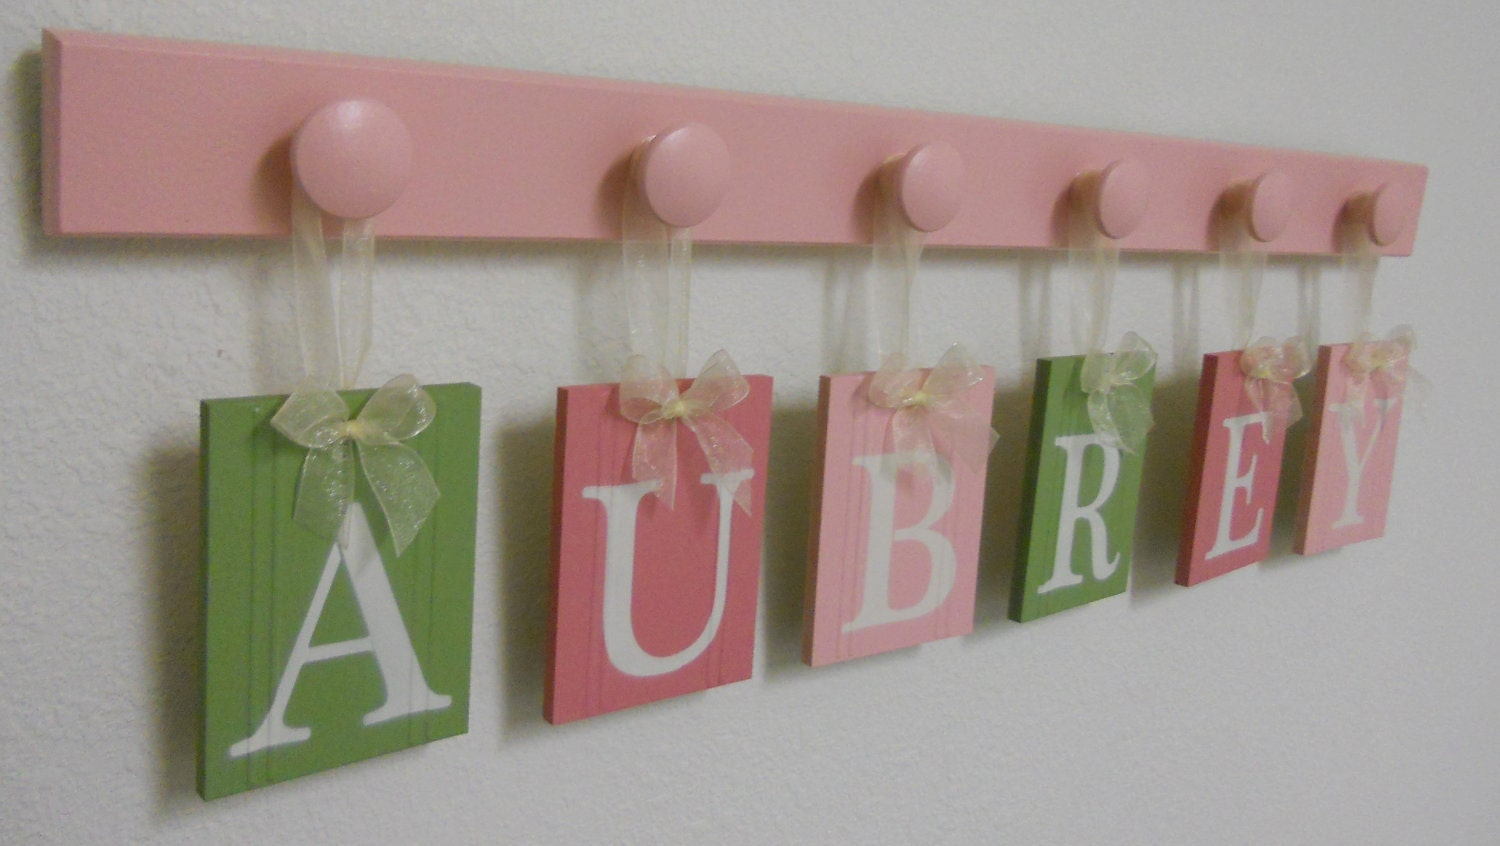 Baby Girl Wooden Letters Sign Includes Personalized Alphabet Wall letters and 6 Pegs- Light Green, Pinks. Custom Order for AUBREY